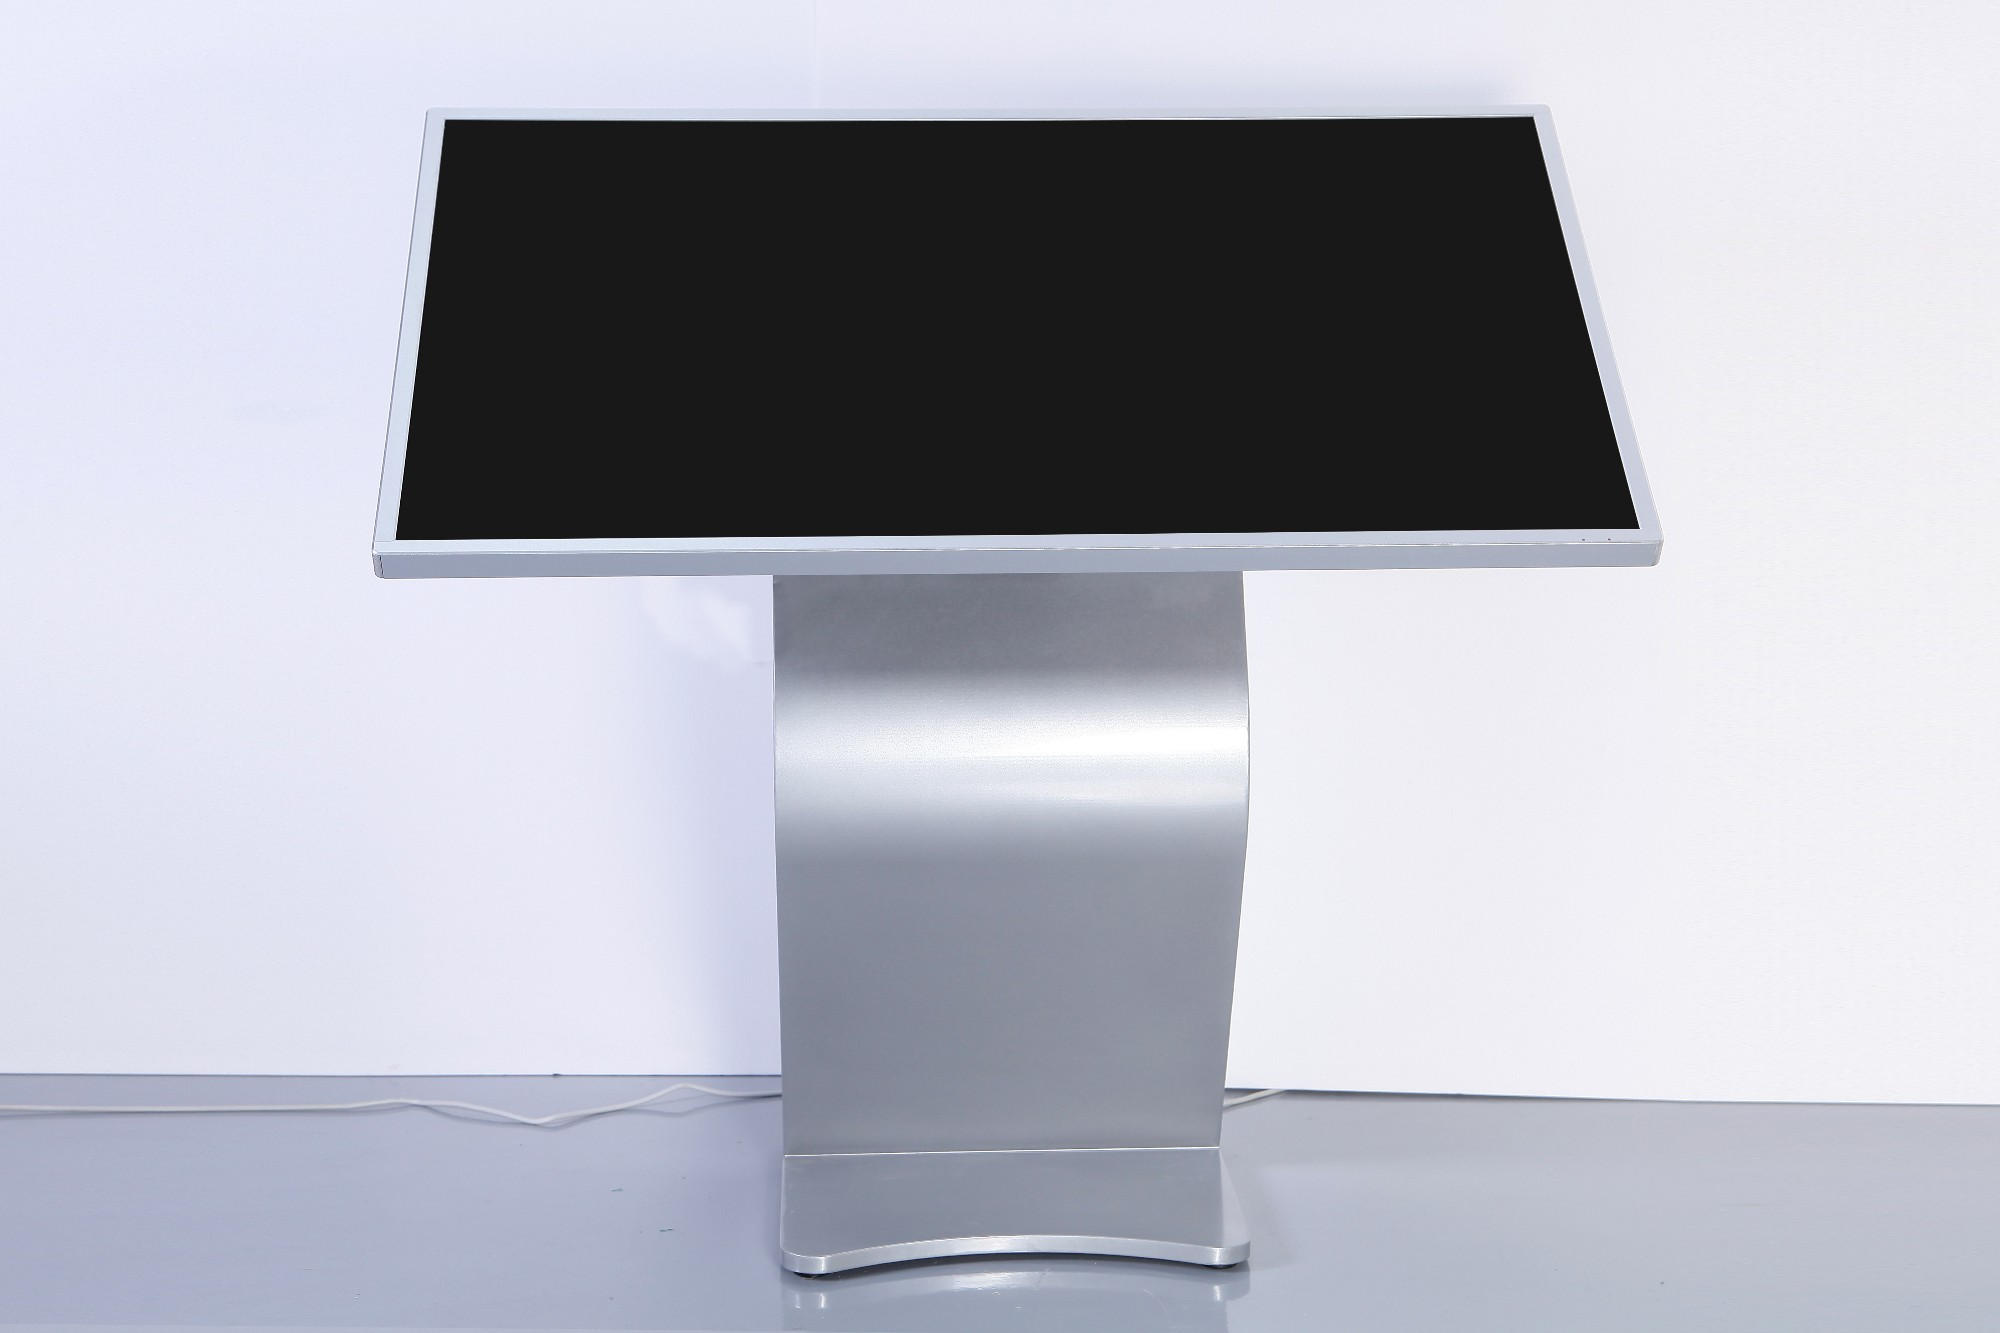 MG-C500C Interactive Touchscreen Display